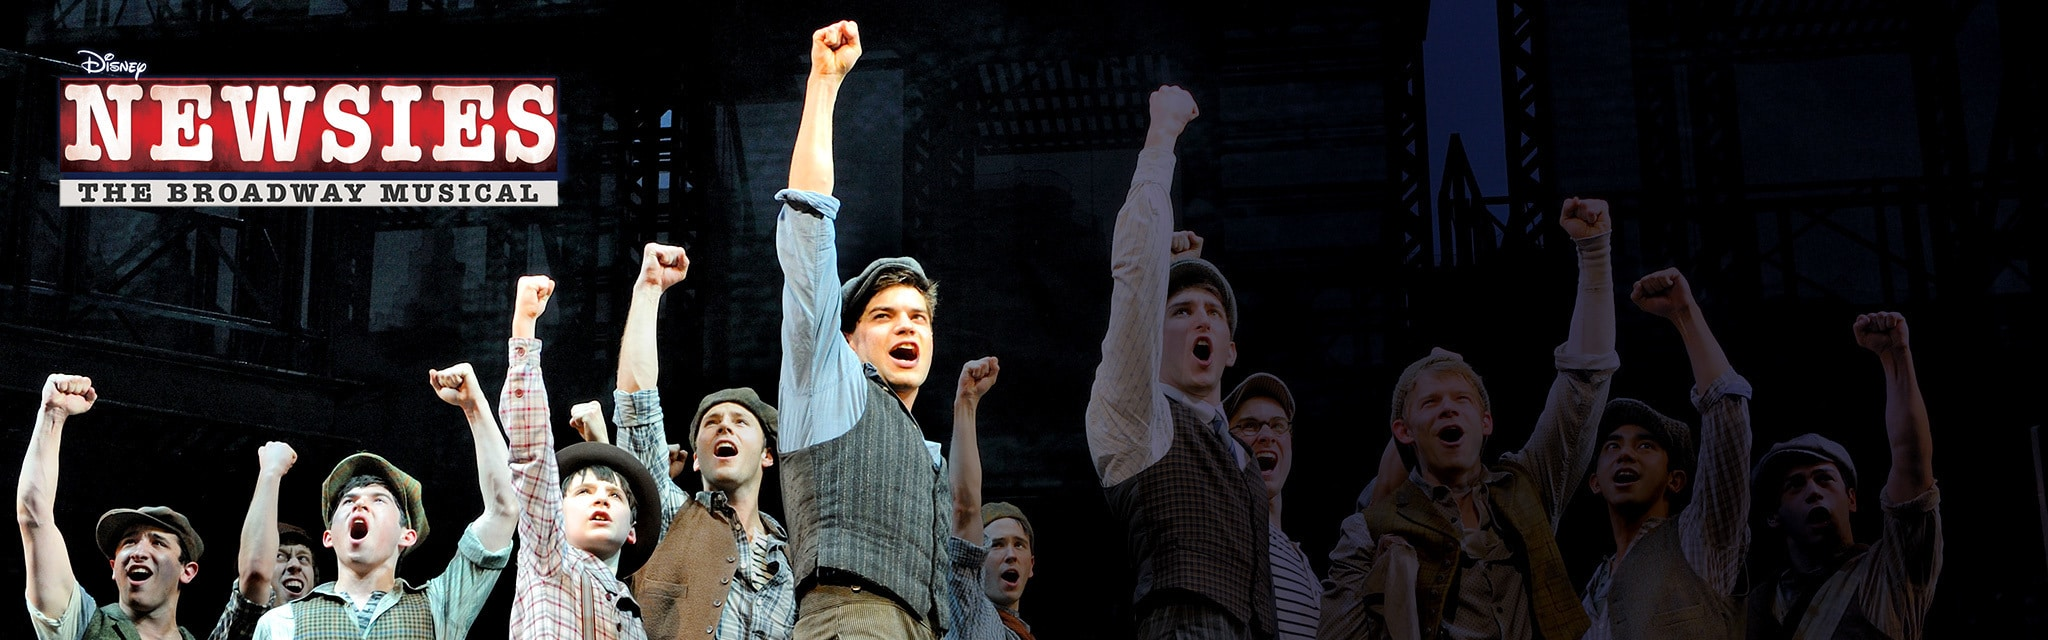 Newsies - In Movie Theaters - hero